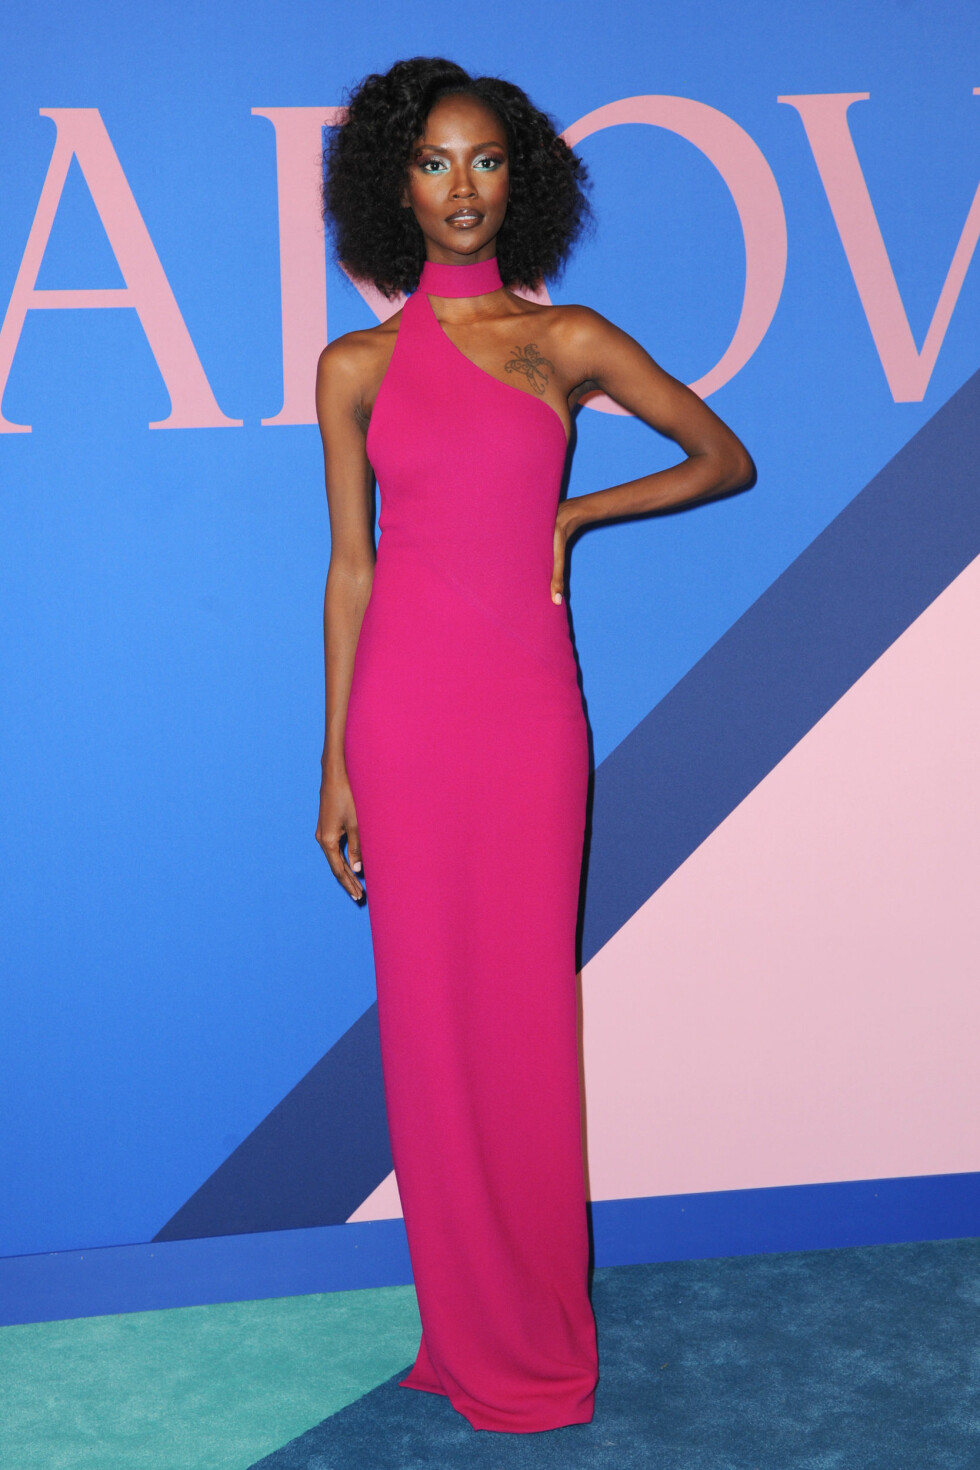 CFDA FASHION AWARDS: Riley Montana Foto: Splash News